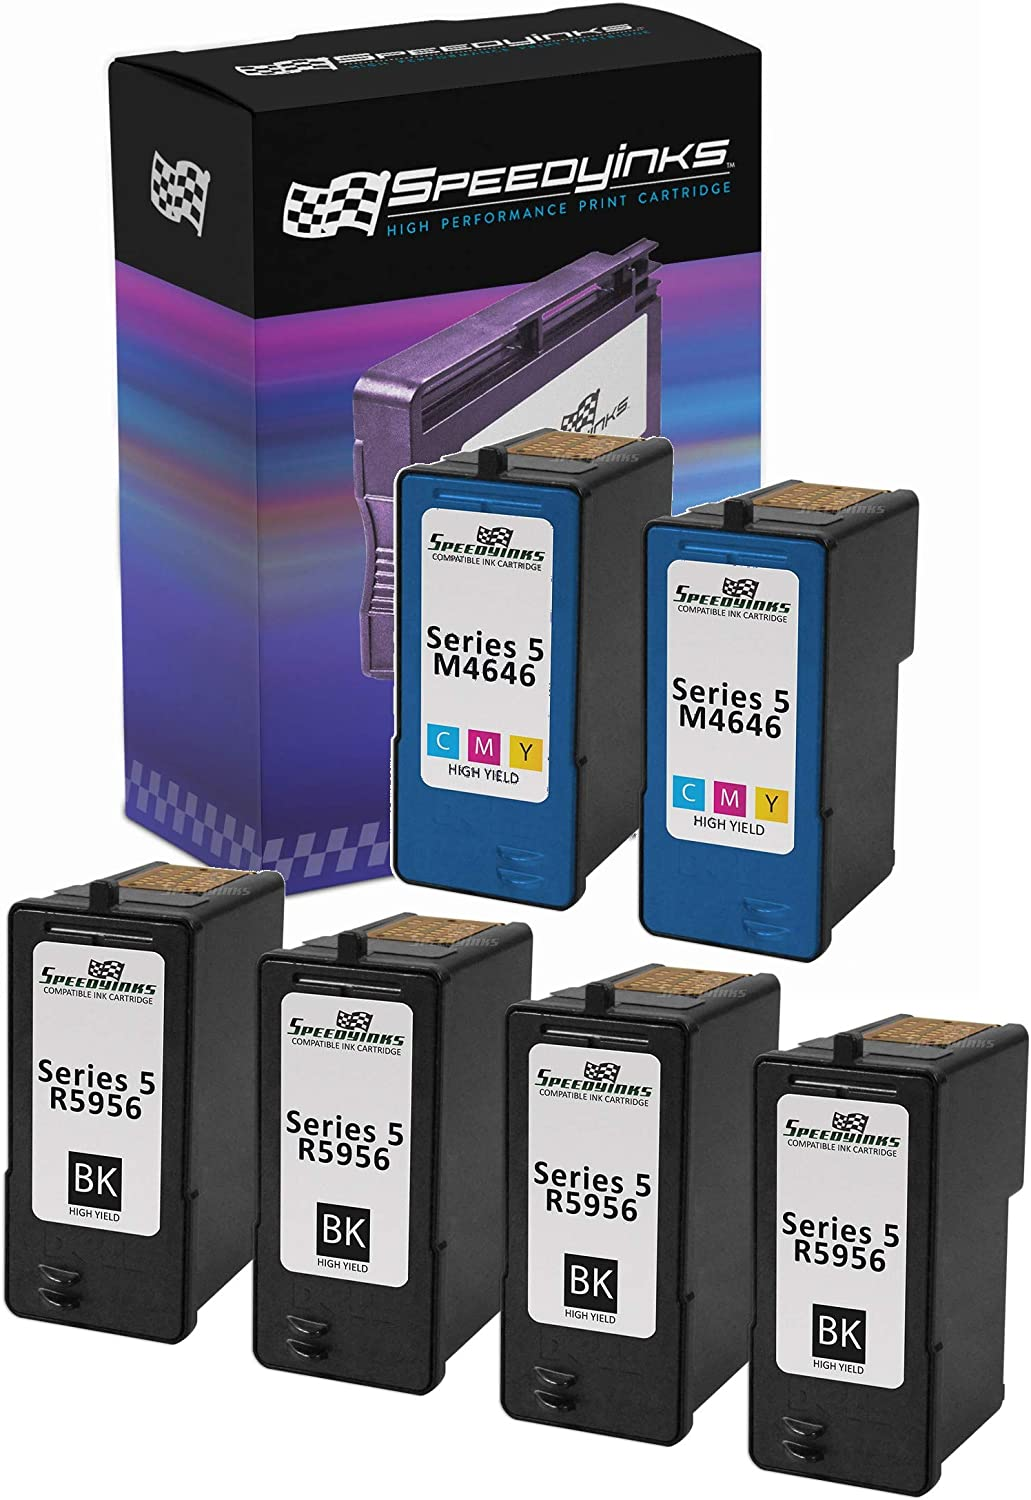 SpeedyInks Remanufactured Ink Cartridge Replacement for Dell M4640 |Series 5 (4 Black, 2 Color, 6-Pack)